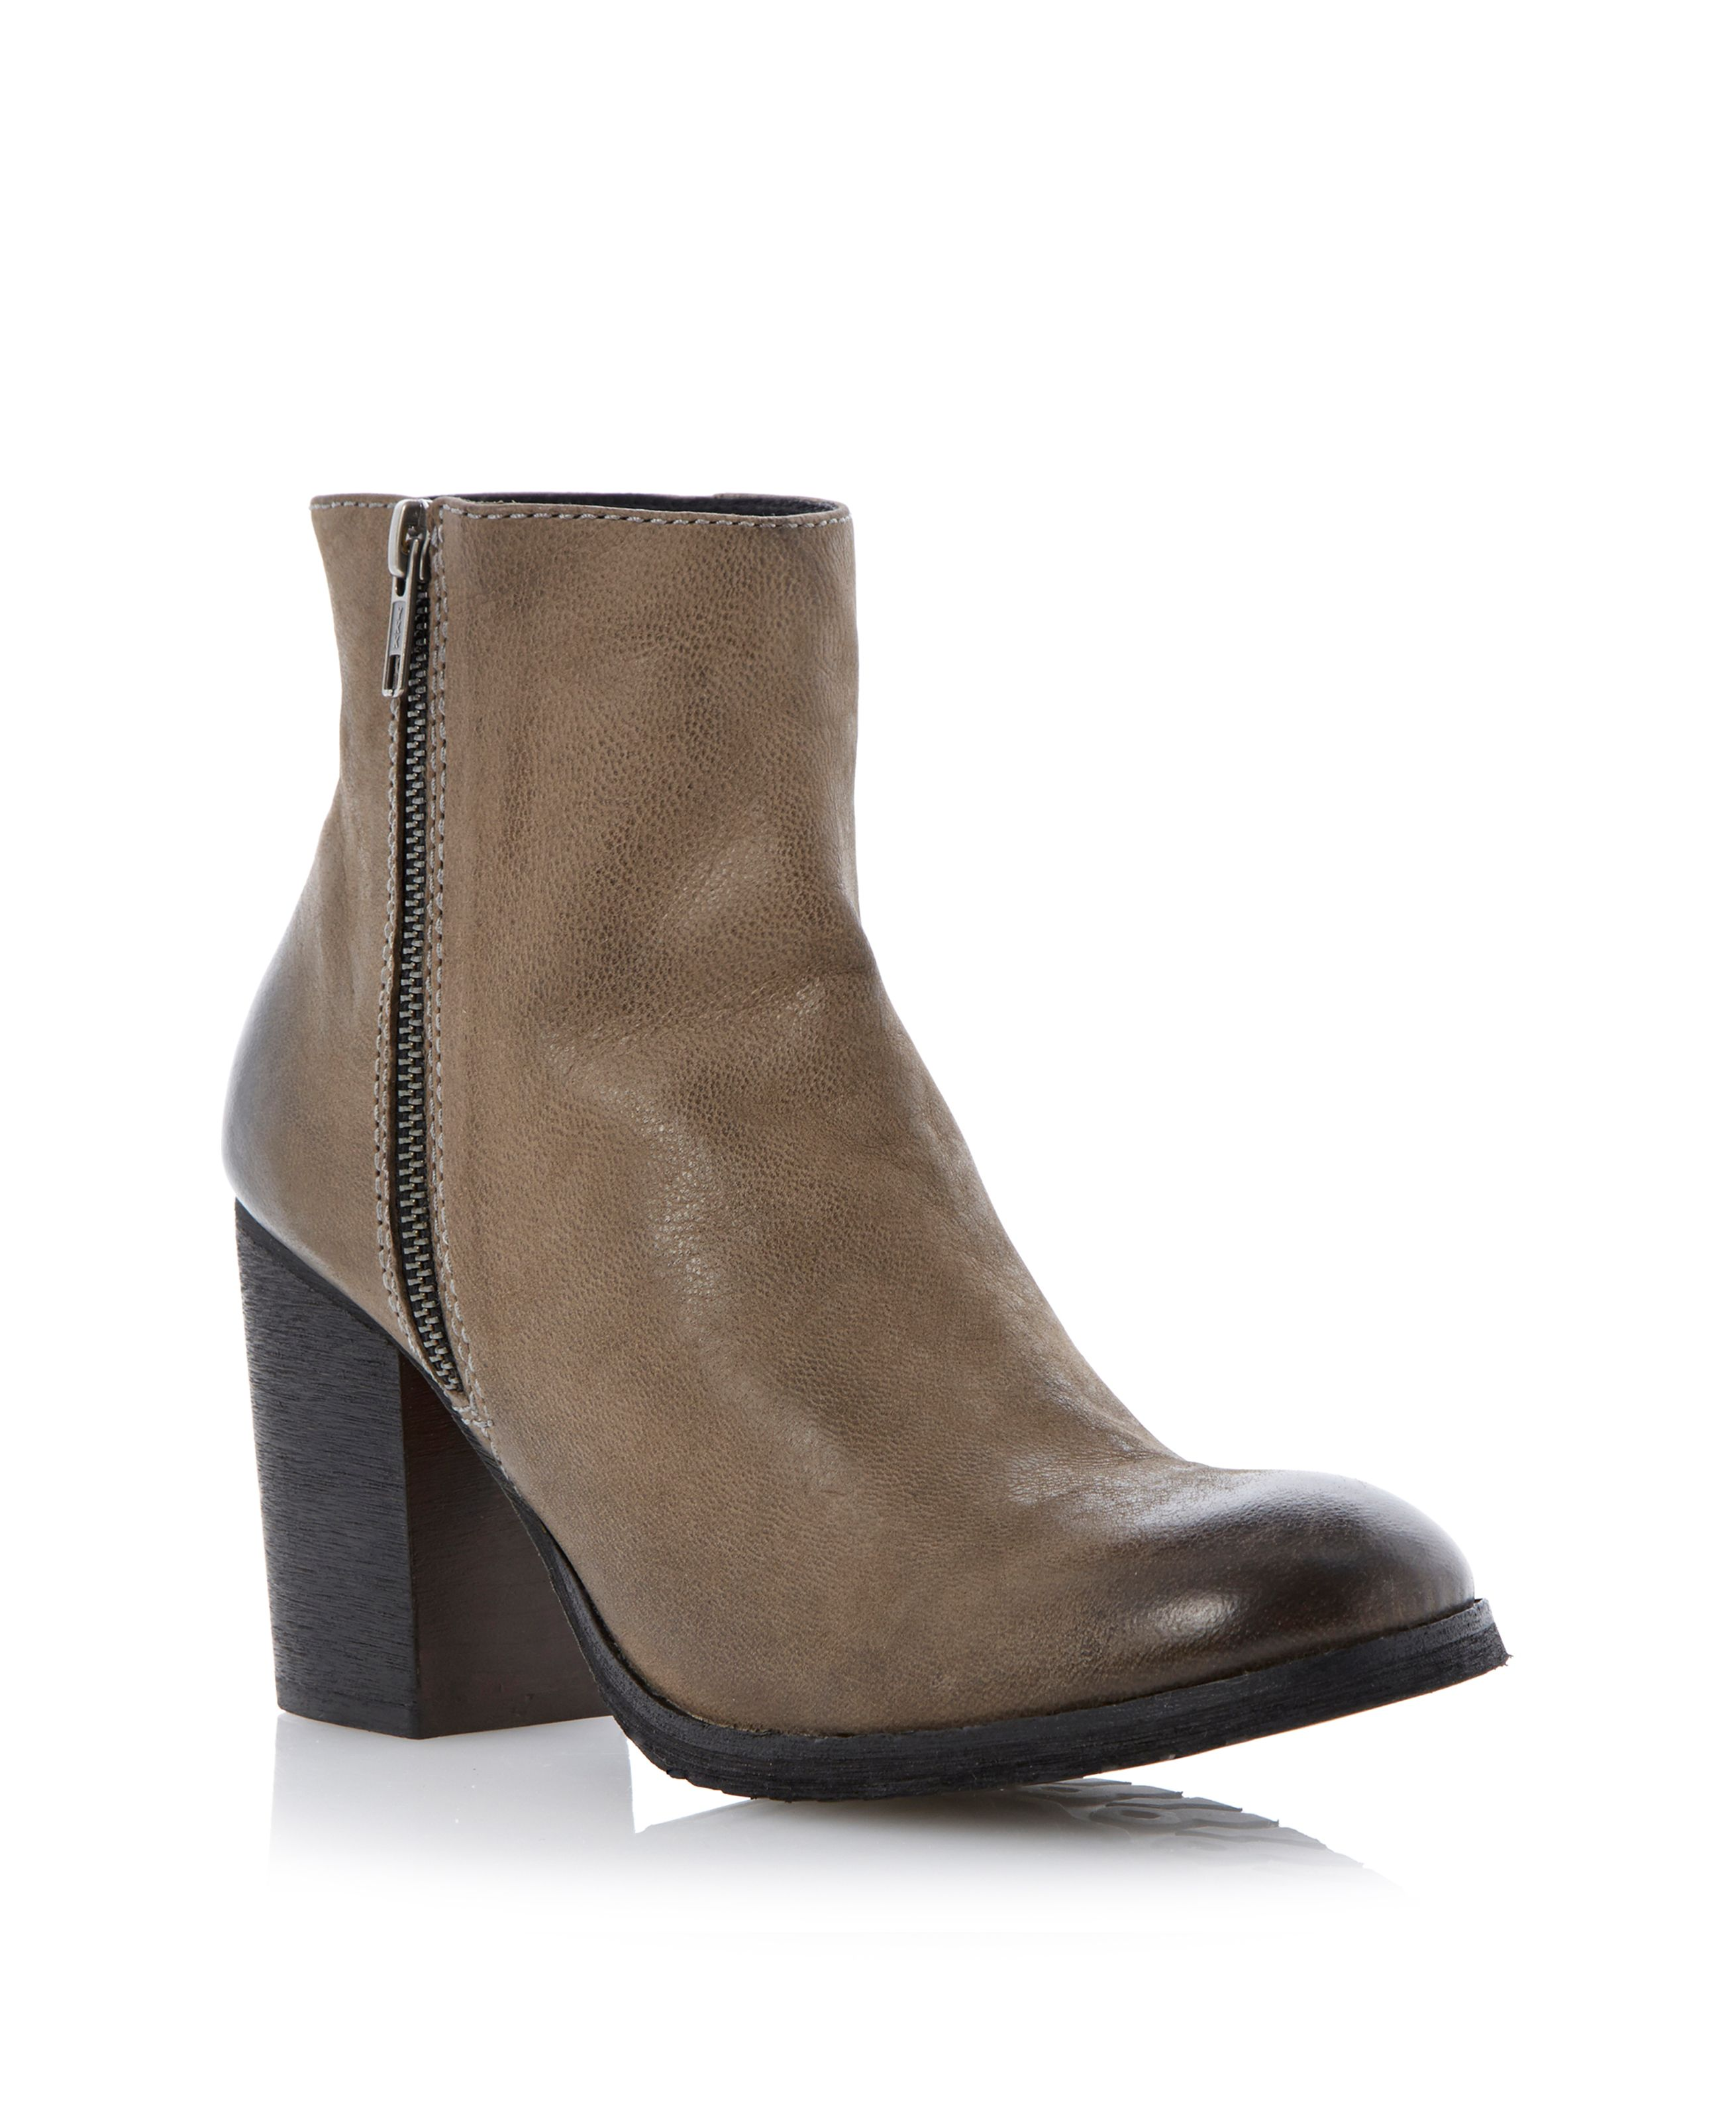 Prowess round toe zip side ankle boots